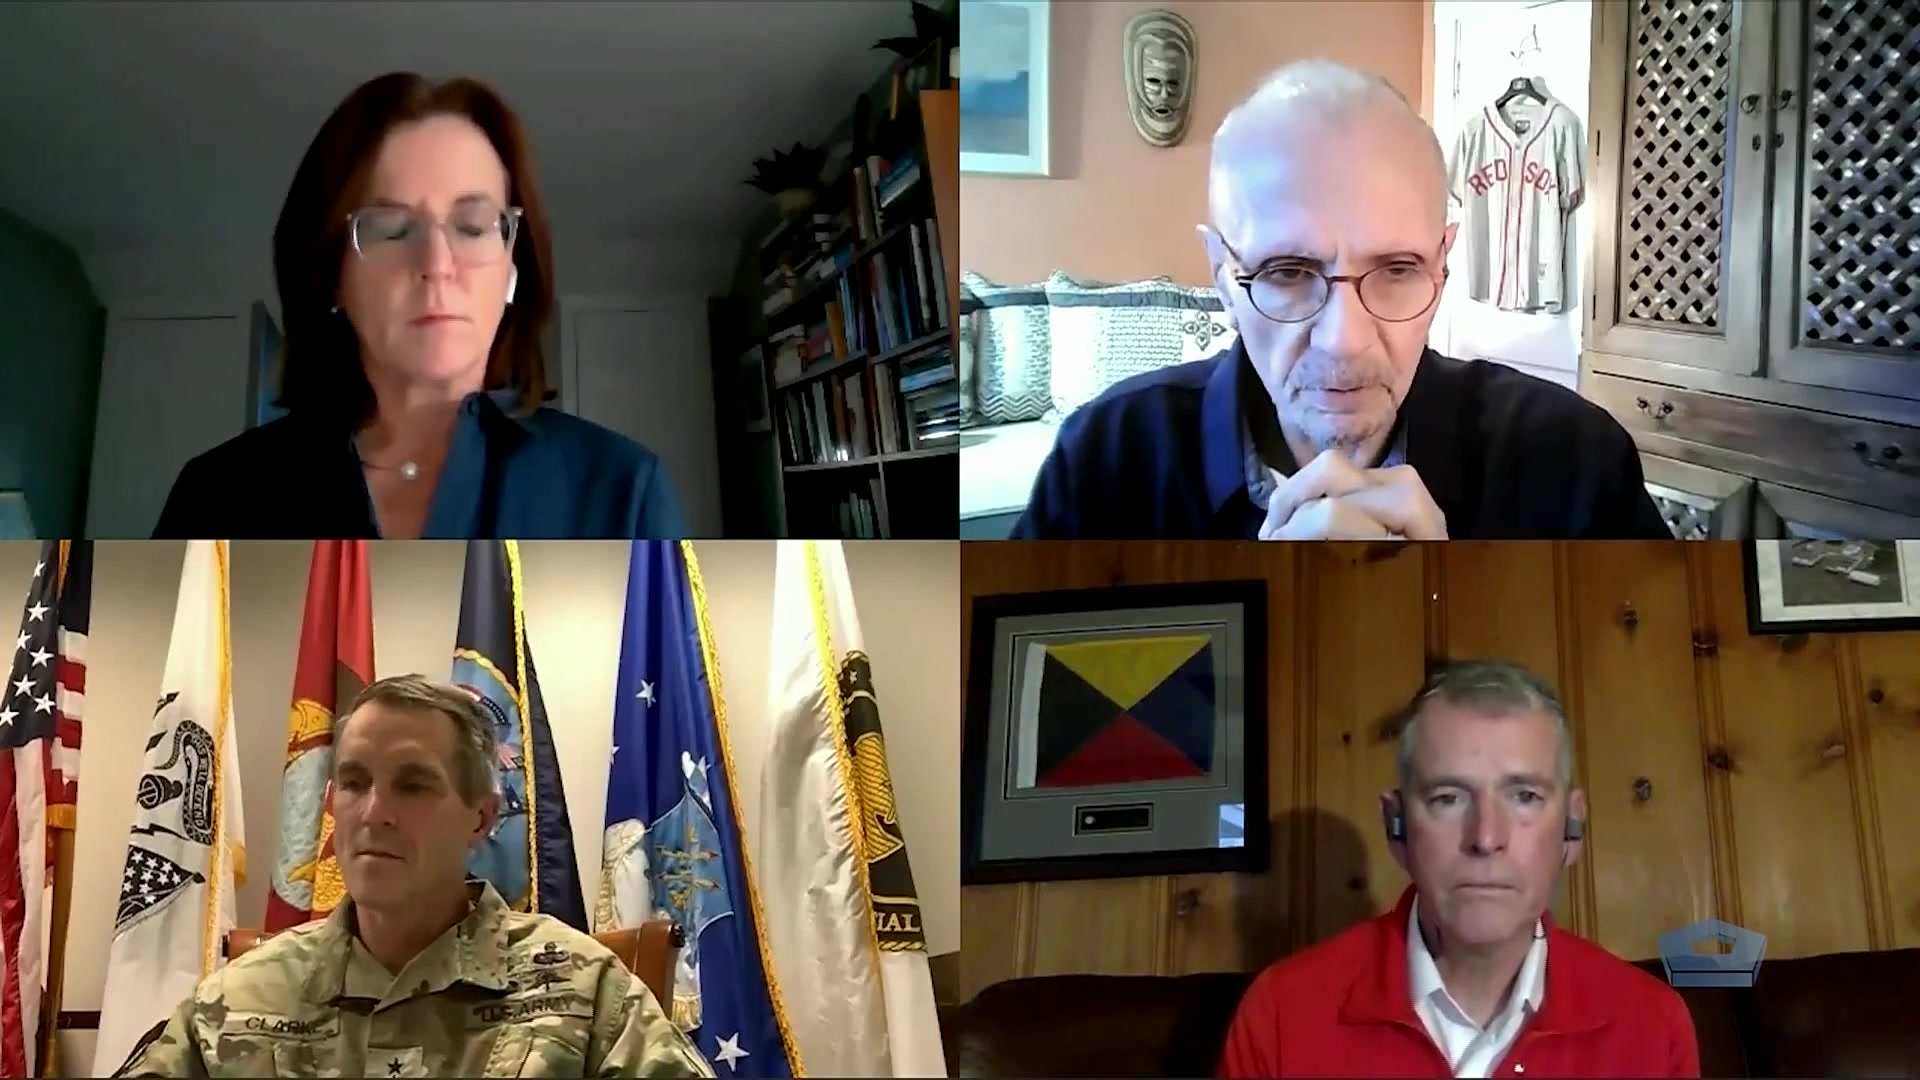 Army Gen. Richard D. Clarke, U.S. Special Operations Command commander, speaks virtually with Hudson Institute scholars Dr. Nadia Schadlow and Bryan Clark about Socom's role in advancing employment of artificial intelligence and machine learning in the Department of Defense, Dec. 7, 2020.